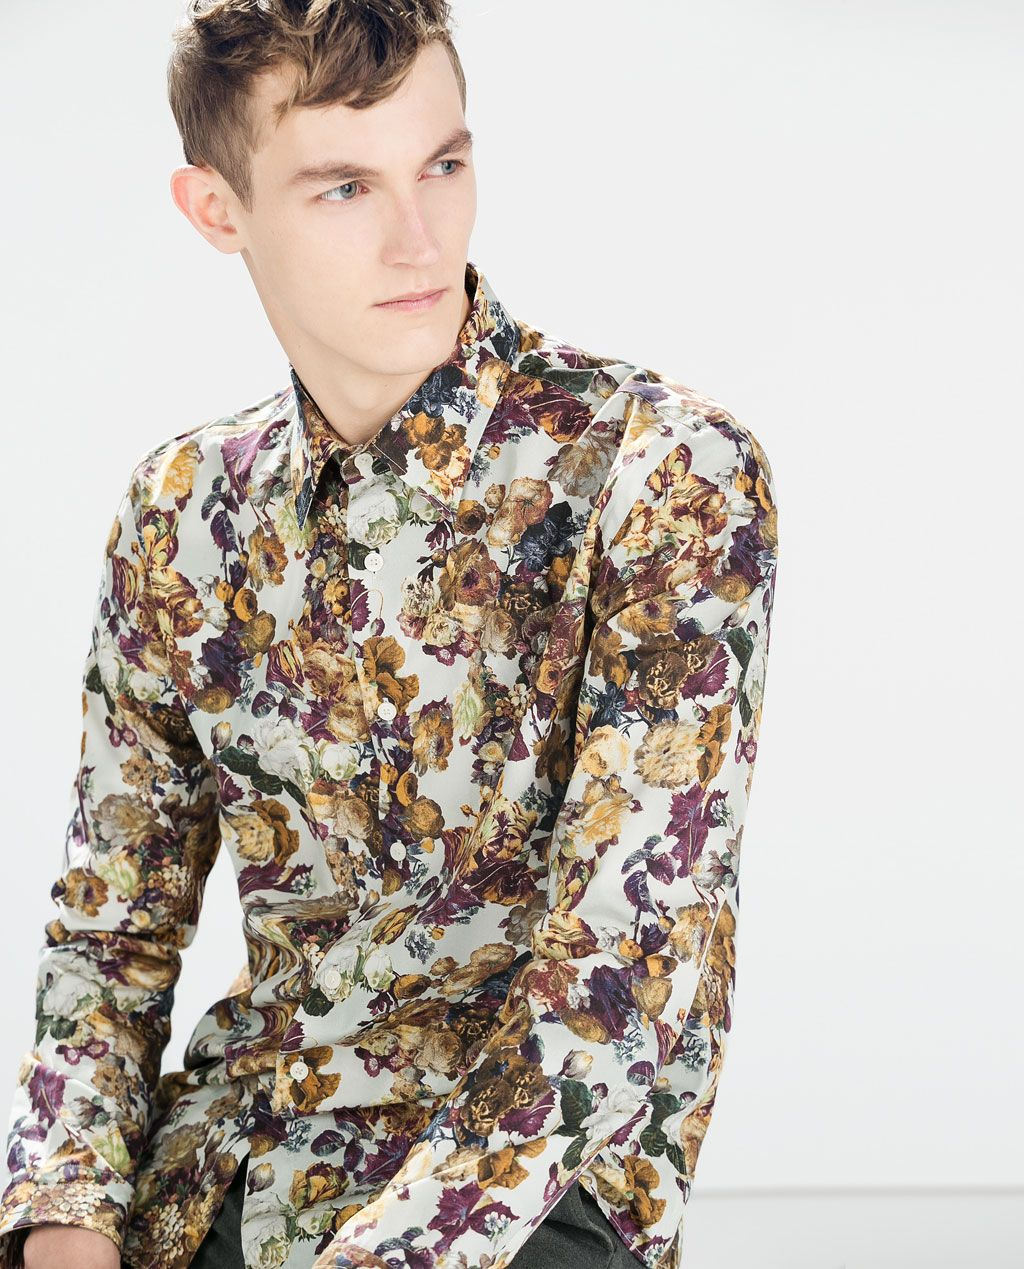 b1d3a0eb6bae FLORAL PRINT SHIRT from Zara | Dress Like A Gentleman in 2019 ...